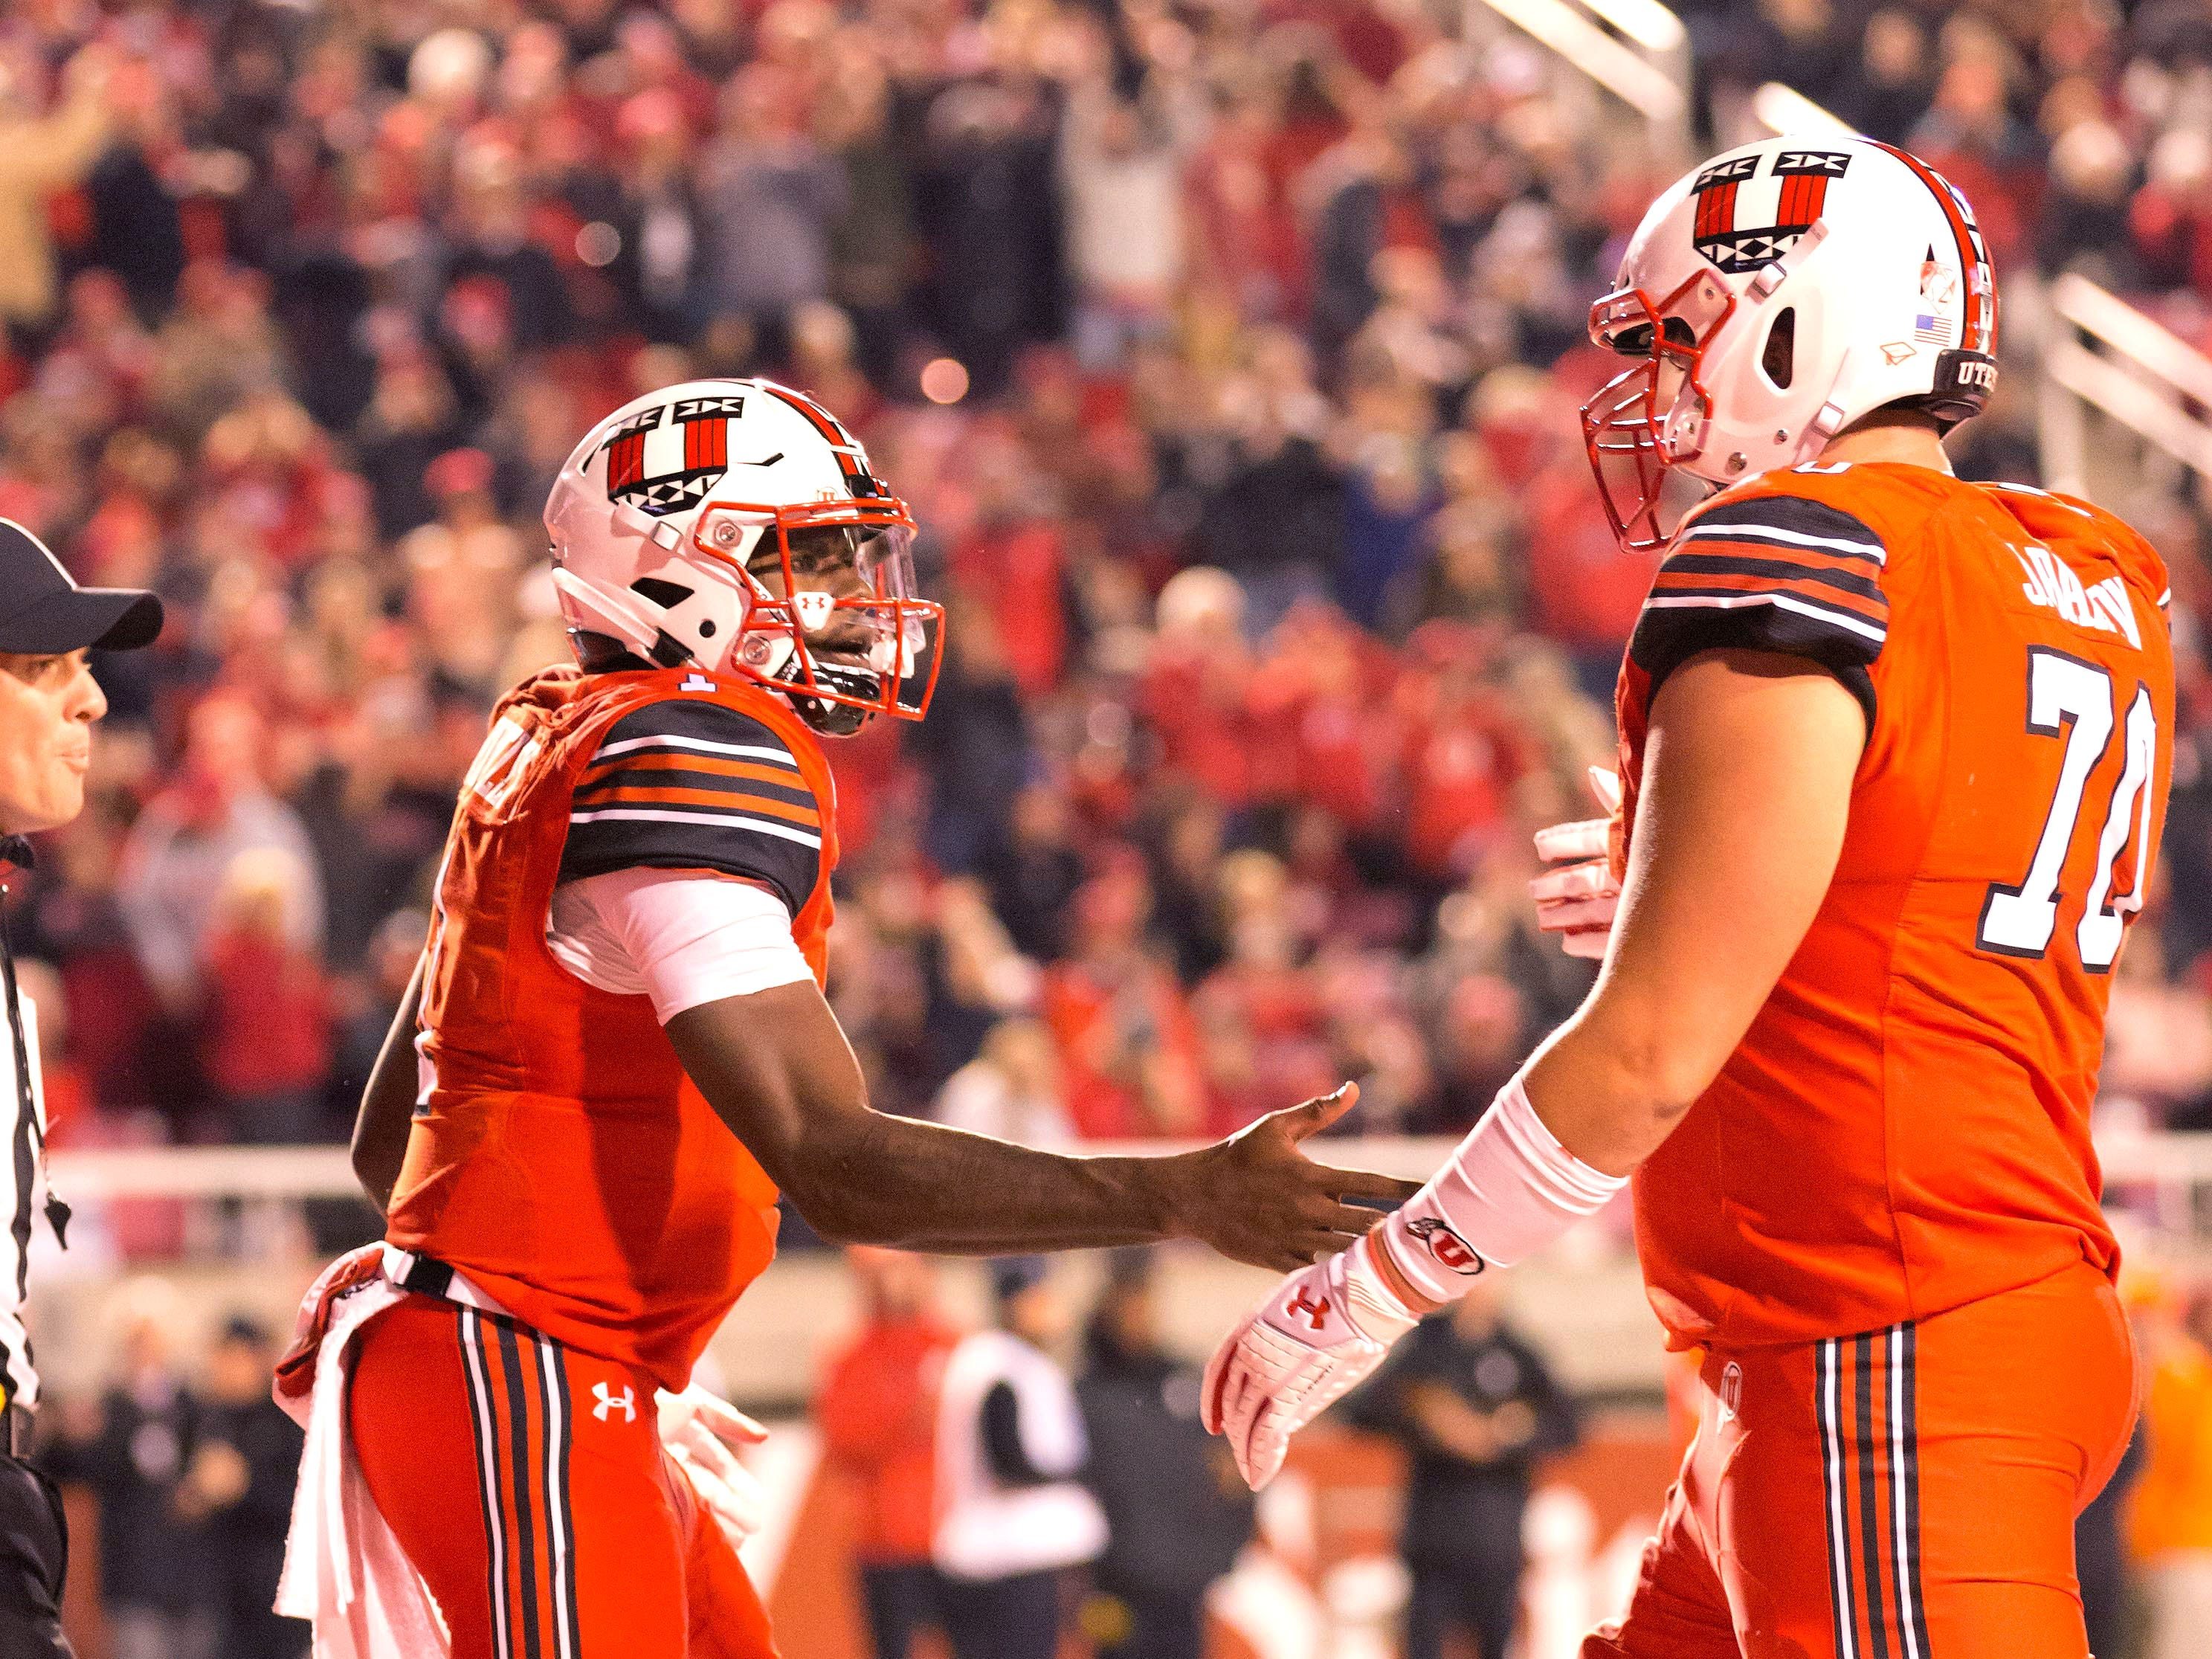 Oct 12, 2018; Salt Lake City, UT, USA; Utah Utes quarterback Tyler Huntley (1) and offensive lineman Jackson Barton (70) react after a touchdown during the first half against the Arizona Wildcats at Rice-Eccles Stadium.